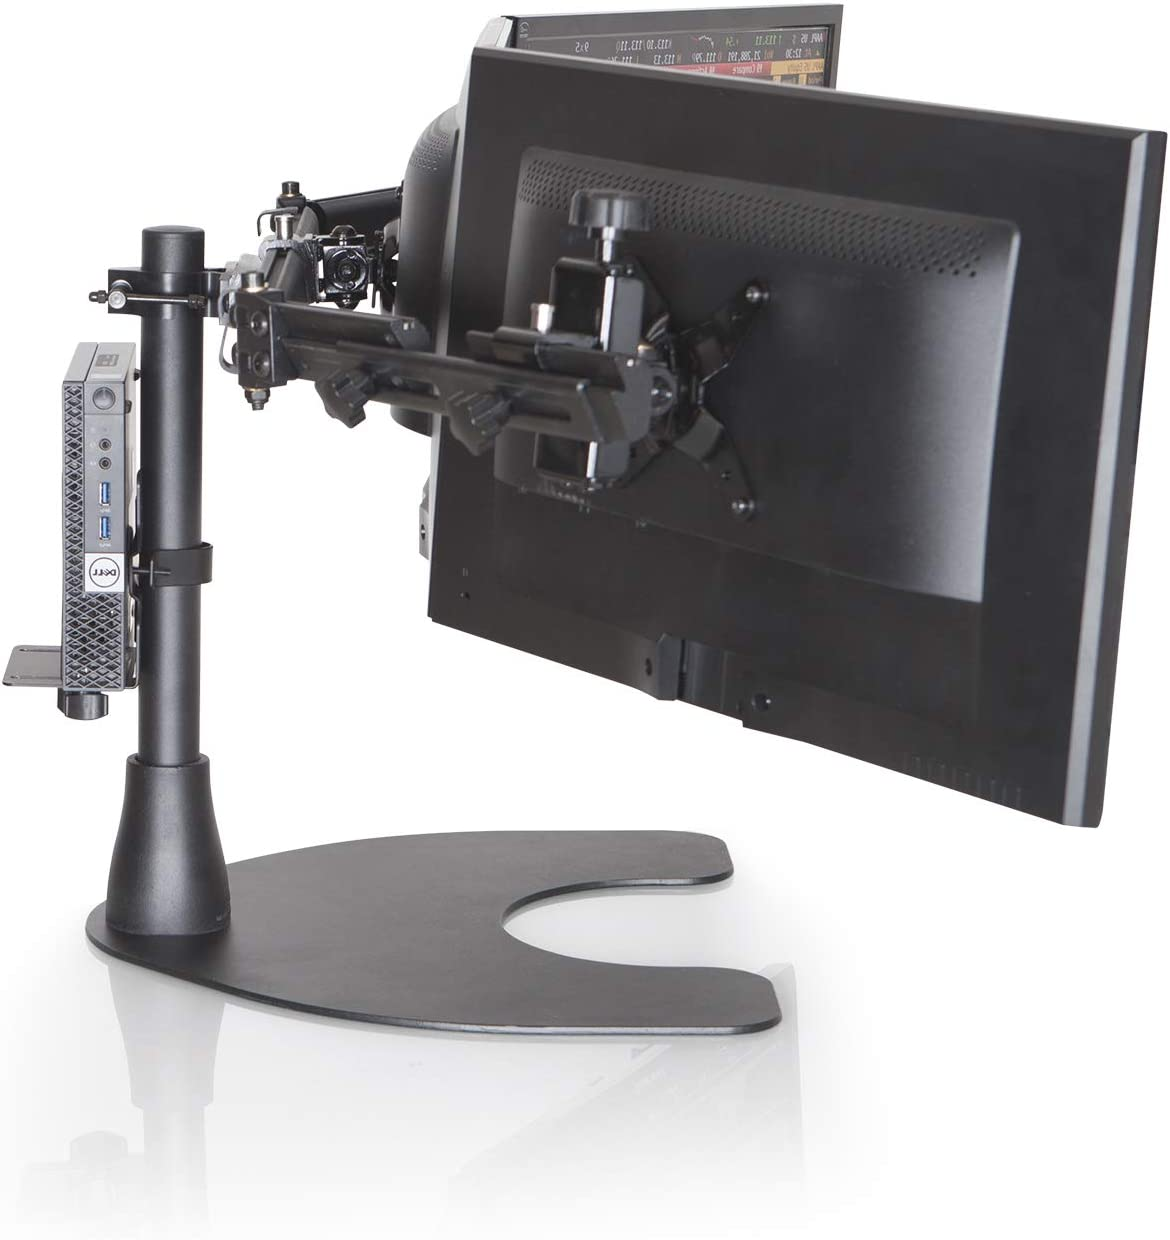 Ergotech Freedom Thin Client Mount VESA Plate, Perfect to mount a Mini PC or Computer, supports CPU's 0.6